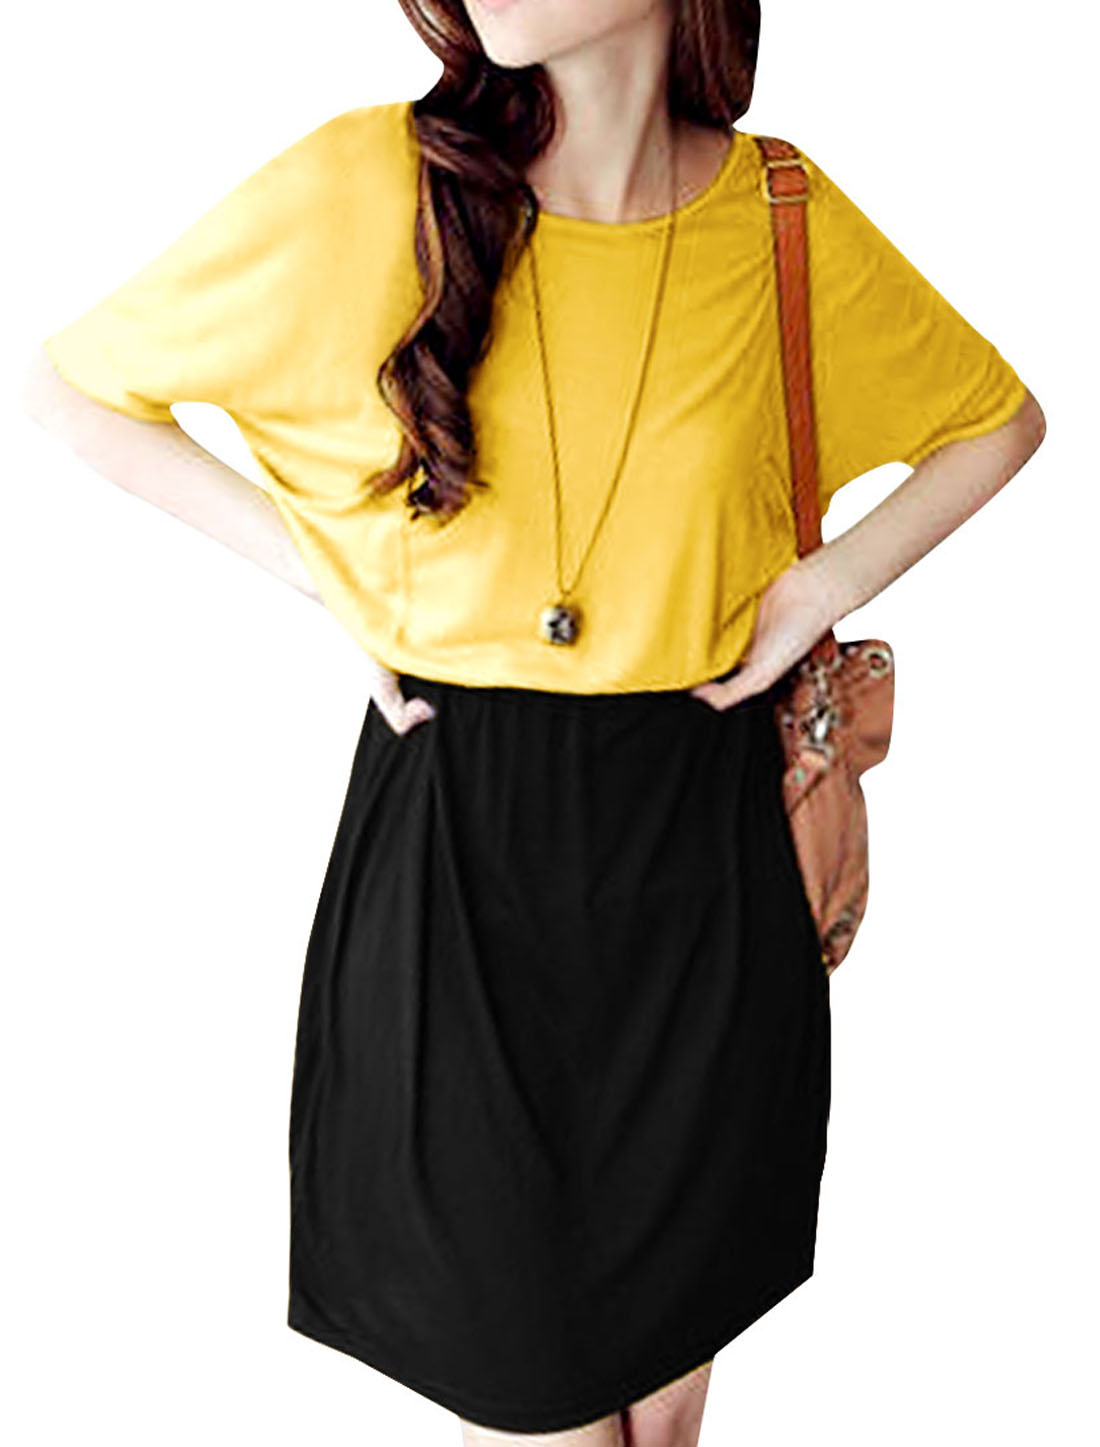 Women Panel Pockets Waist Stretchy A Line Dress Black Yellow S